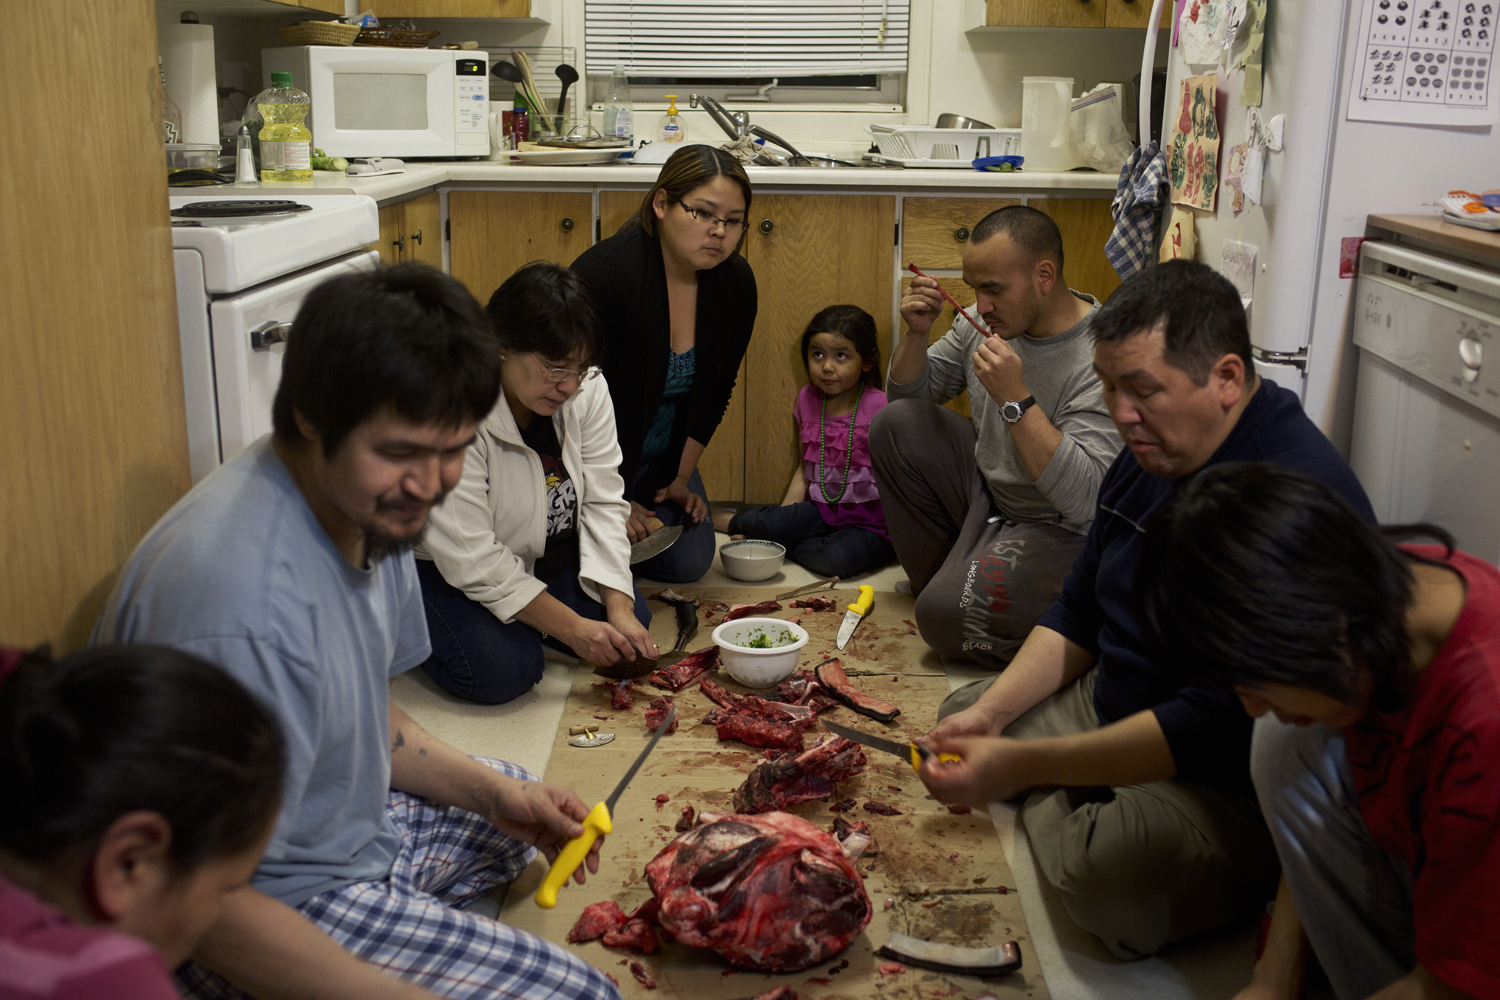 Nov. 13, 2013. People gather around the floor of a kitchen during a feast of hunted foods.